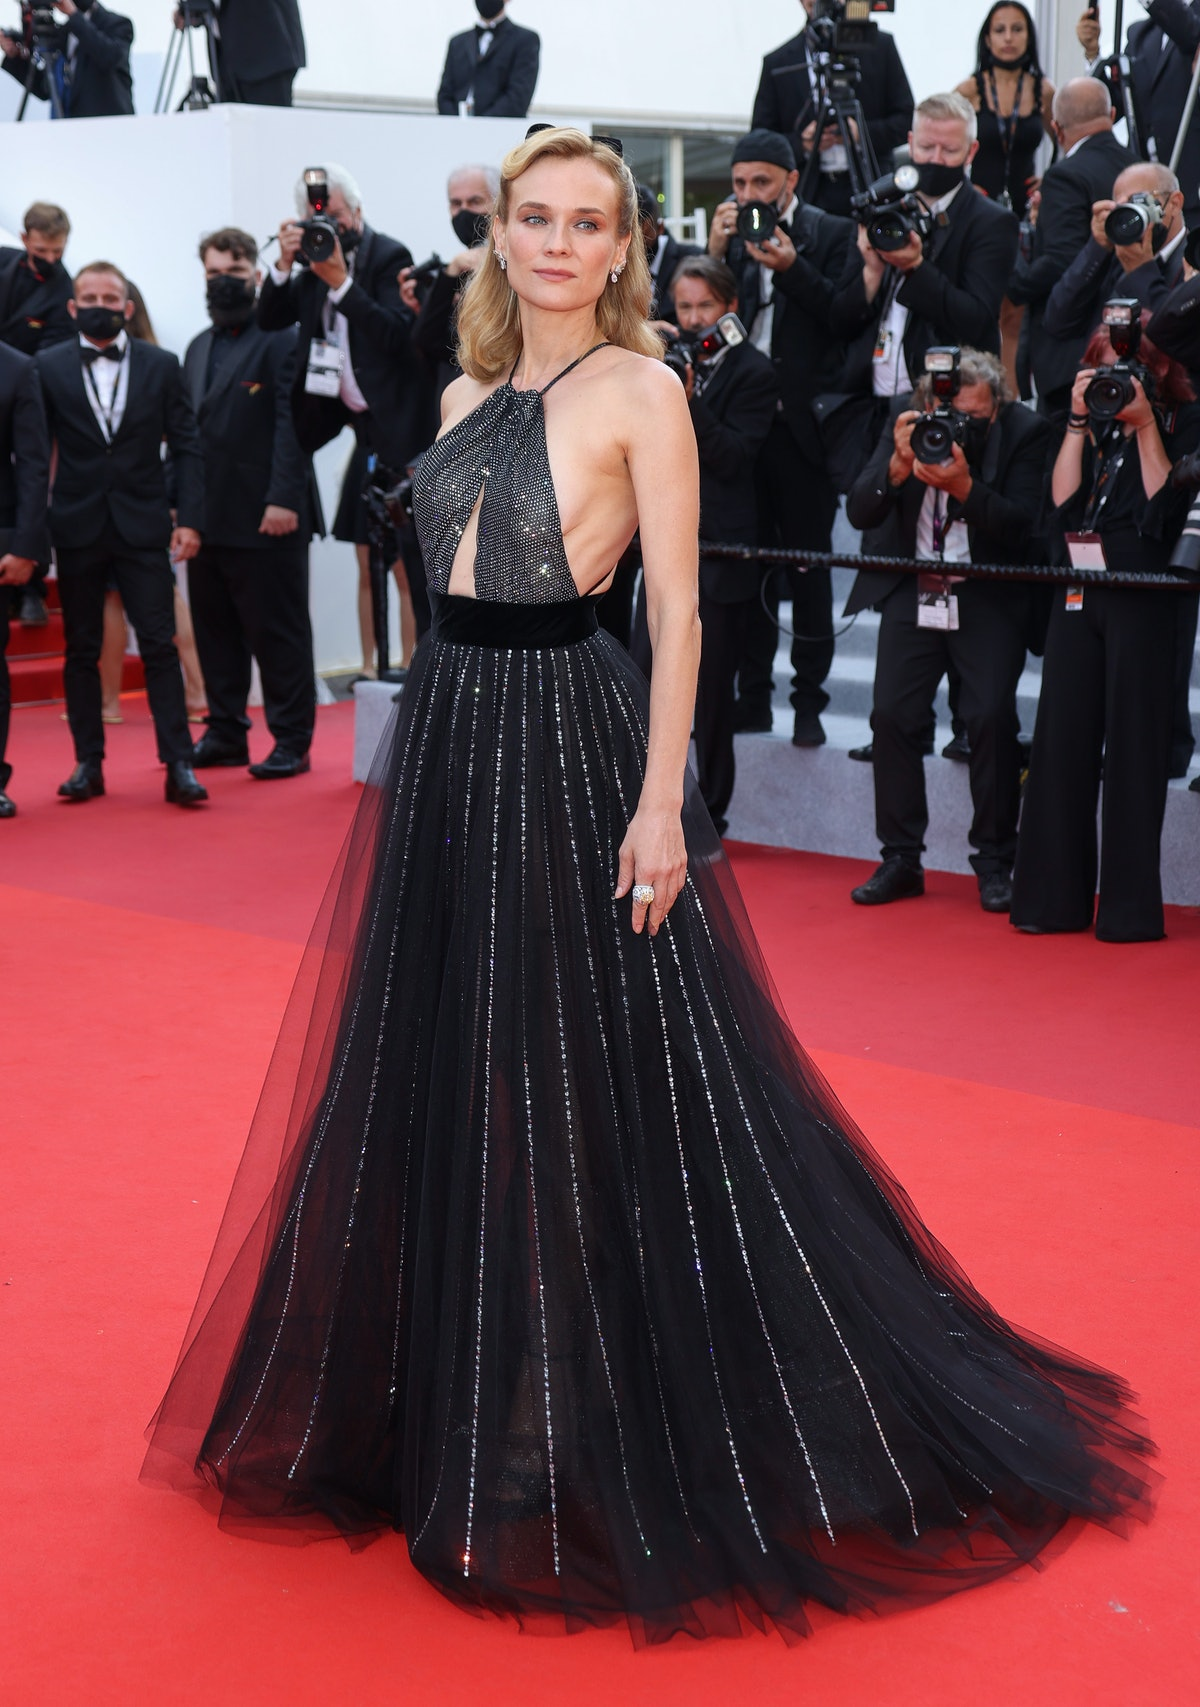 """CANNES, FRANCE - JULY 07: Diane Kruger attends the """"Tout S'est Bien Passe (Everything Went Fine)"""" screening during the 74th annual Cannes Film Festival on July 07, 2021 in Cannes, France. (Photo by Mike Marsland/WireImage)"""